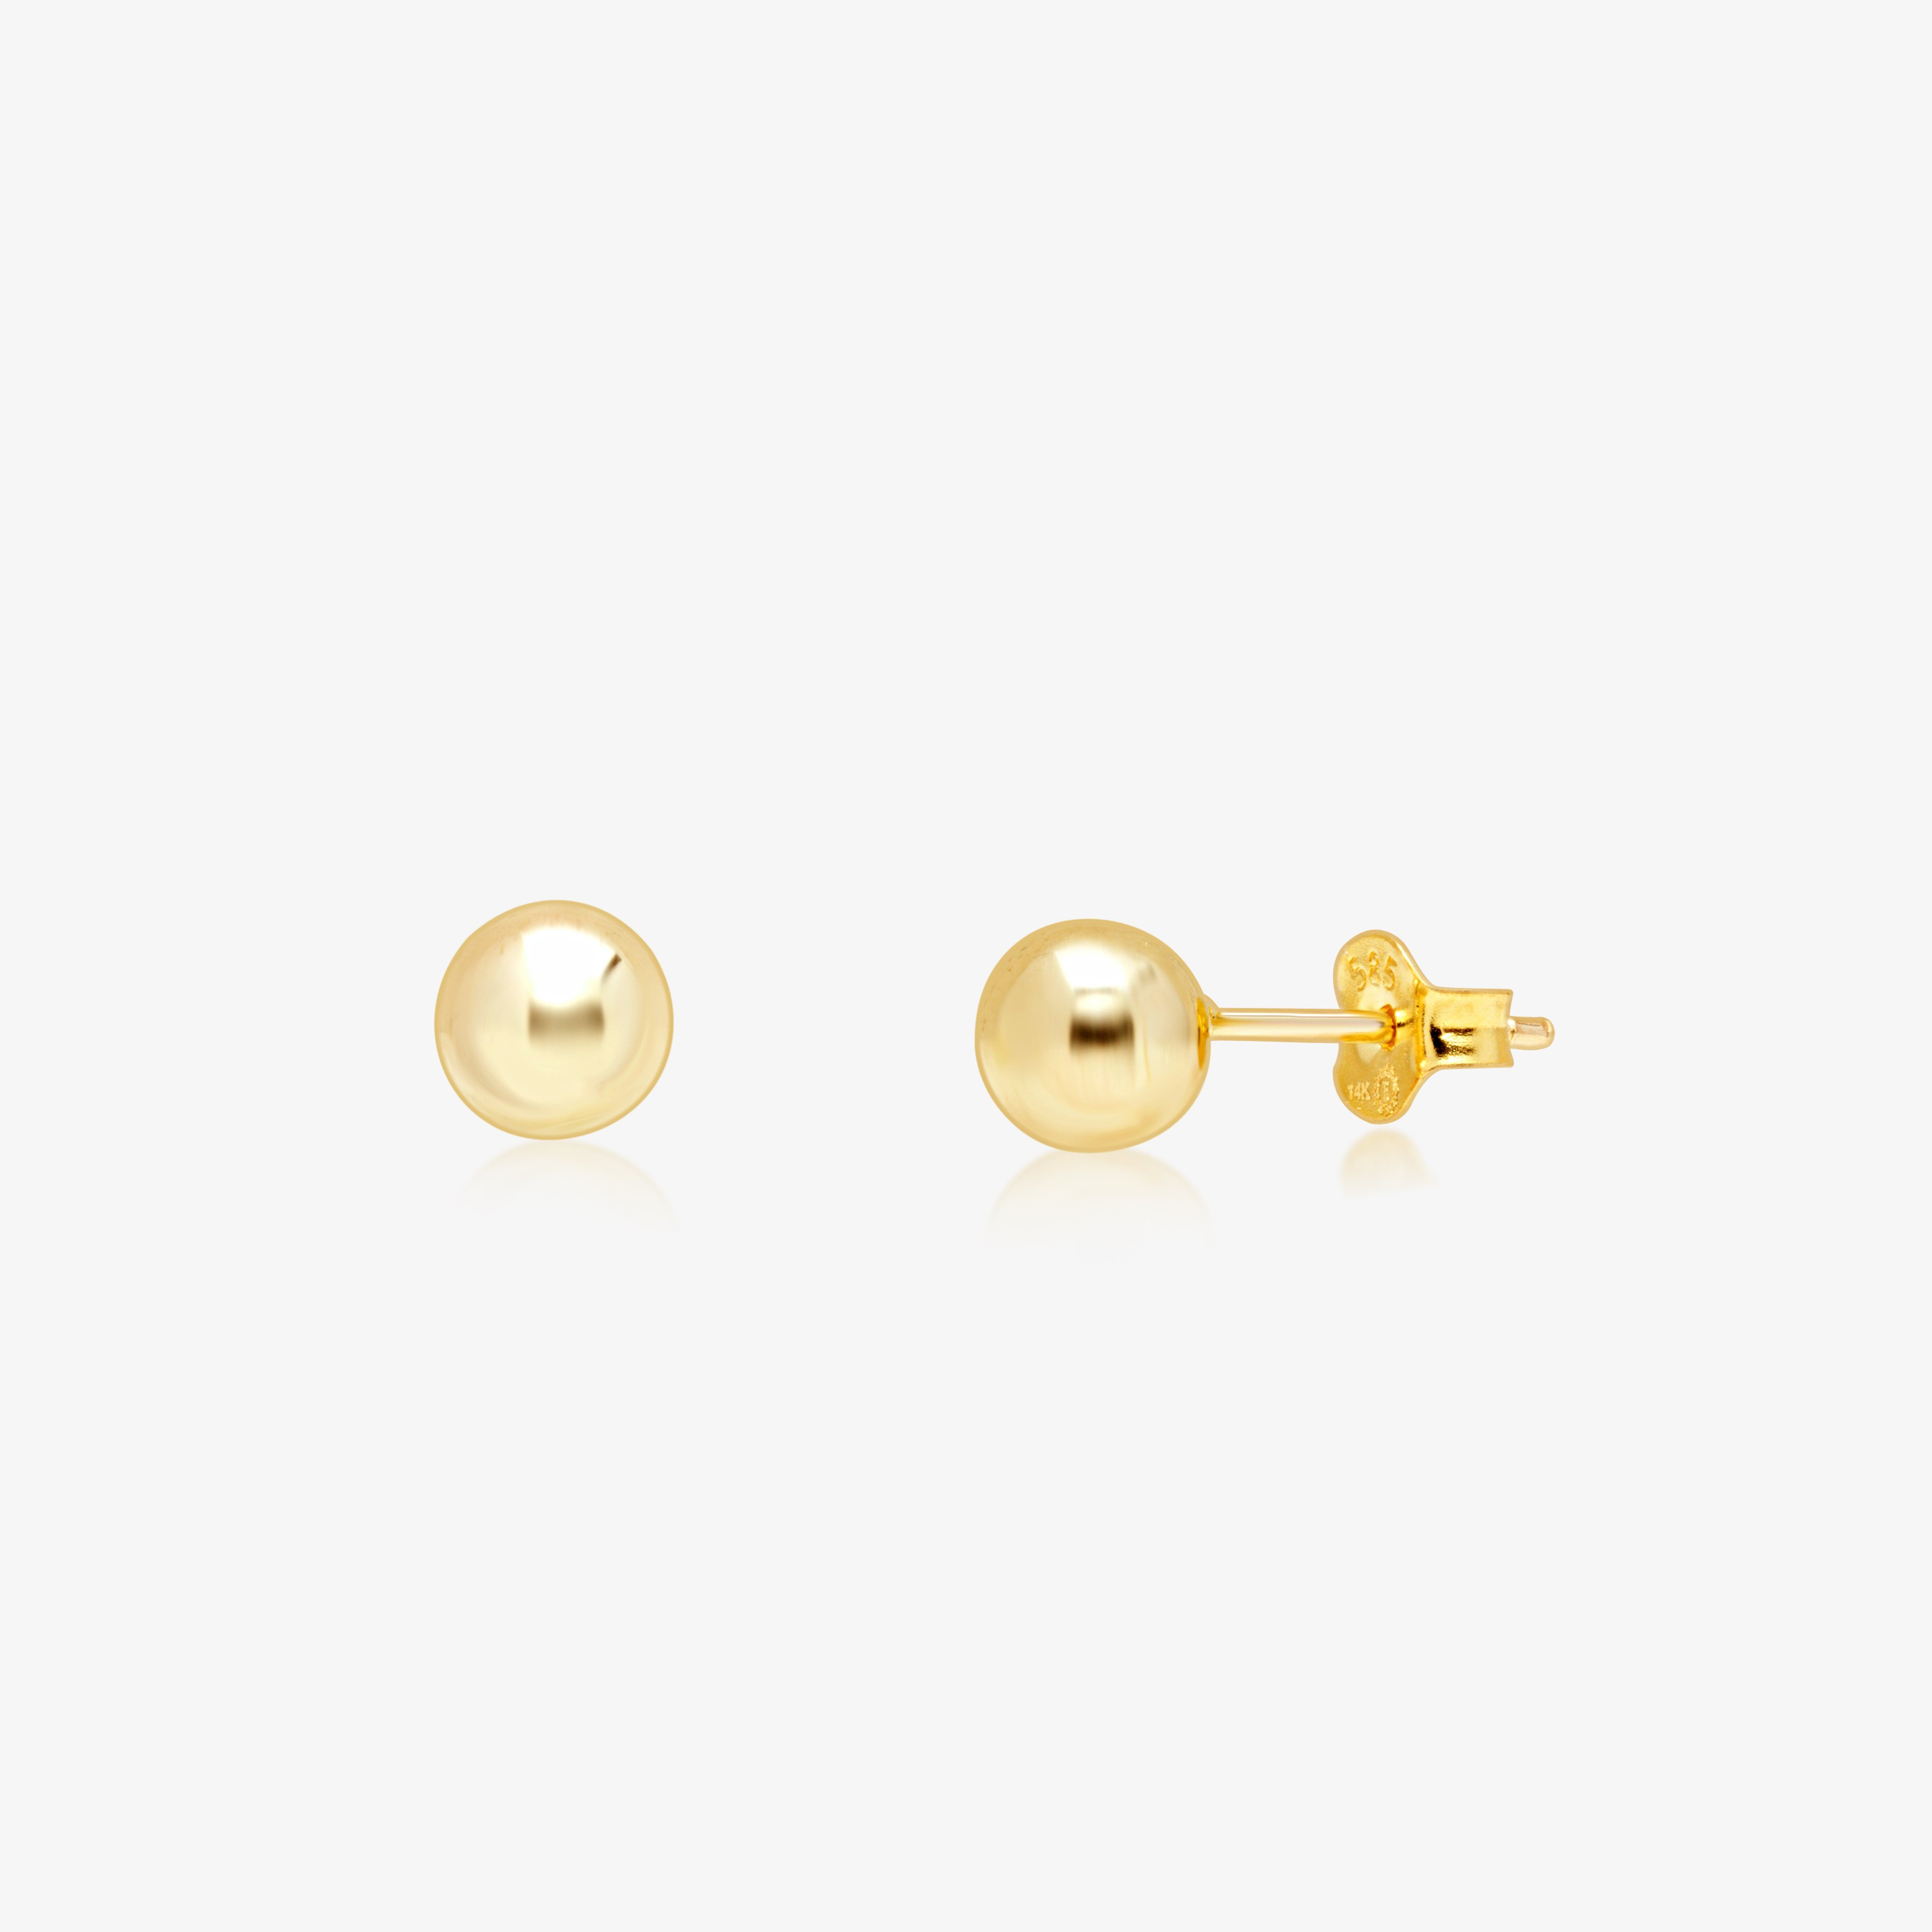 Details about  /Solid Real 14k Yellow Gold Polished Round Stud Earrings Womens Girls